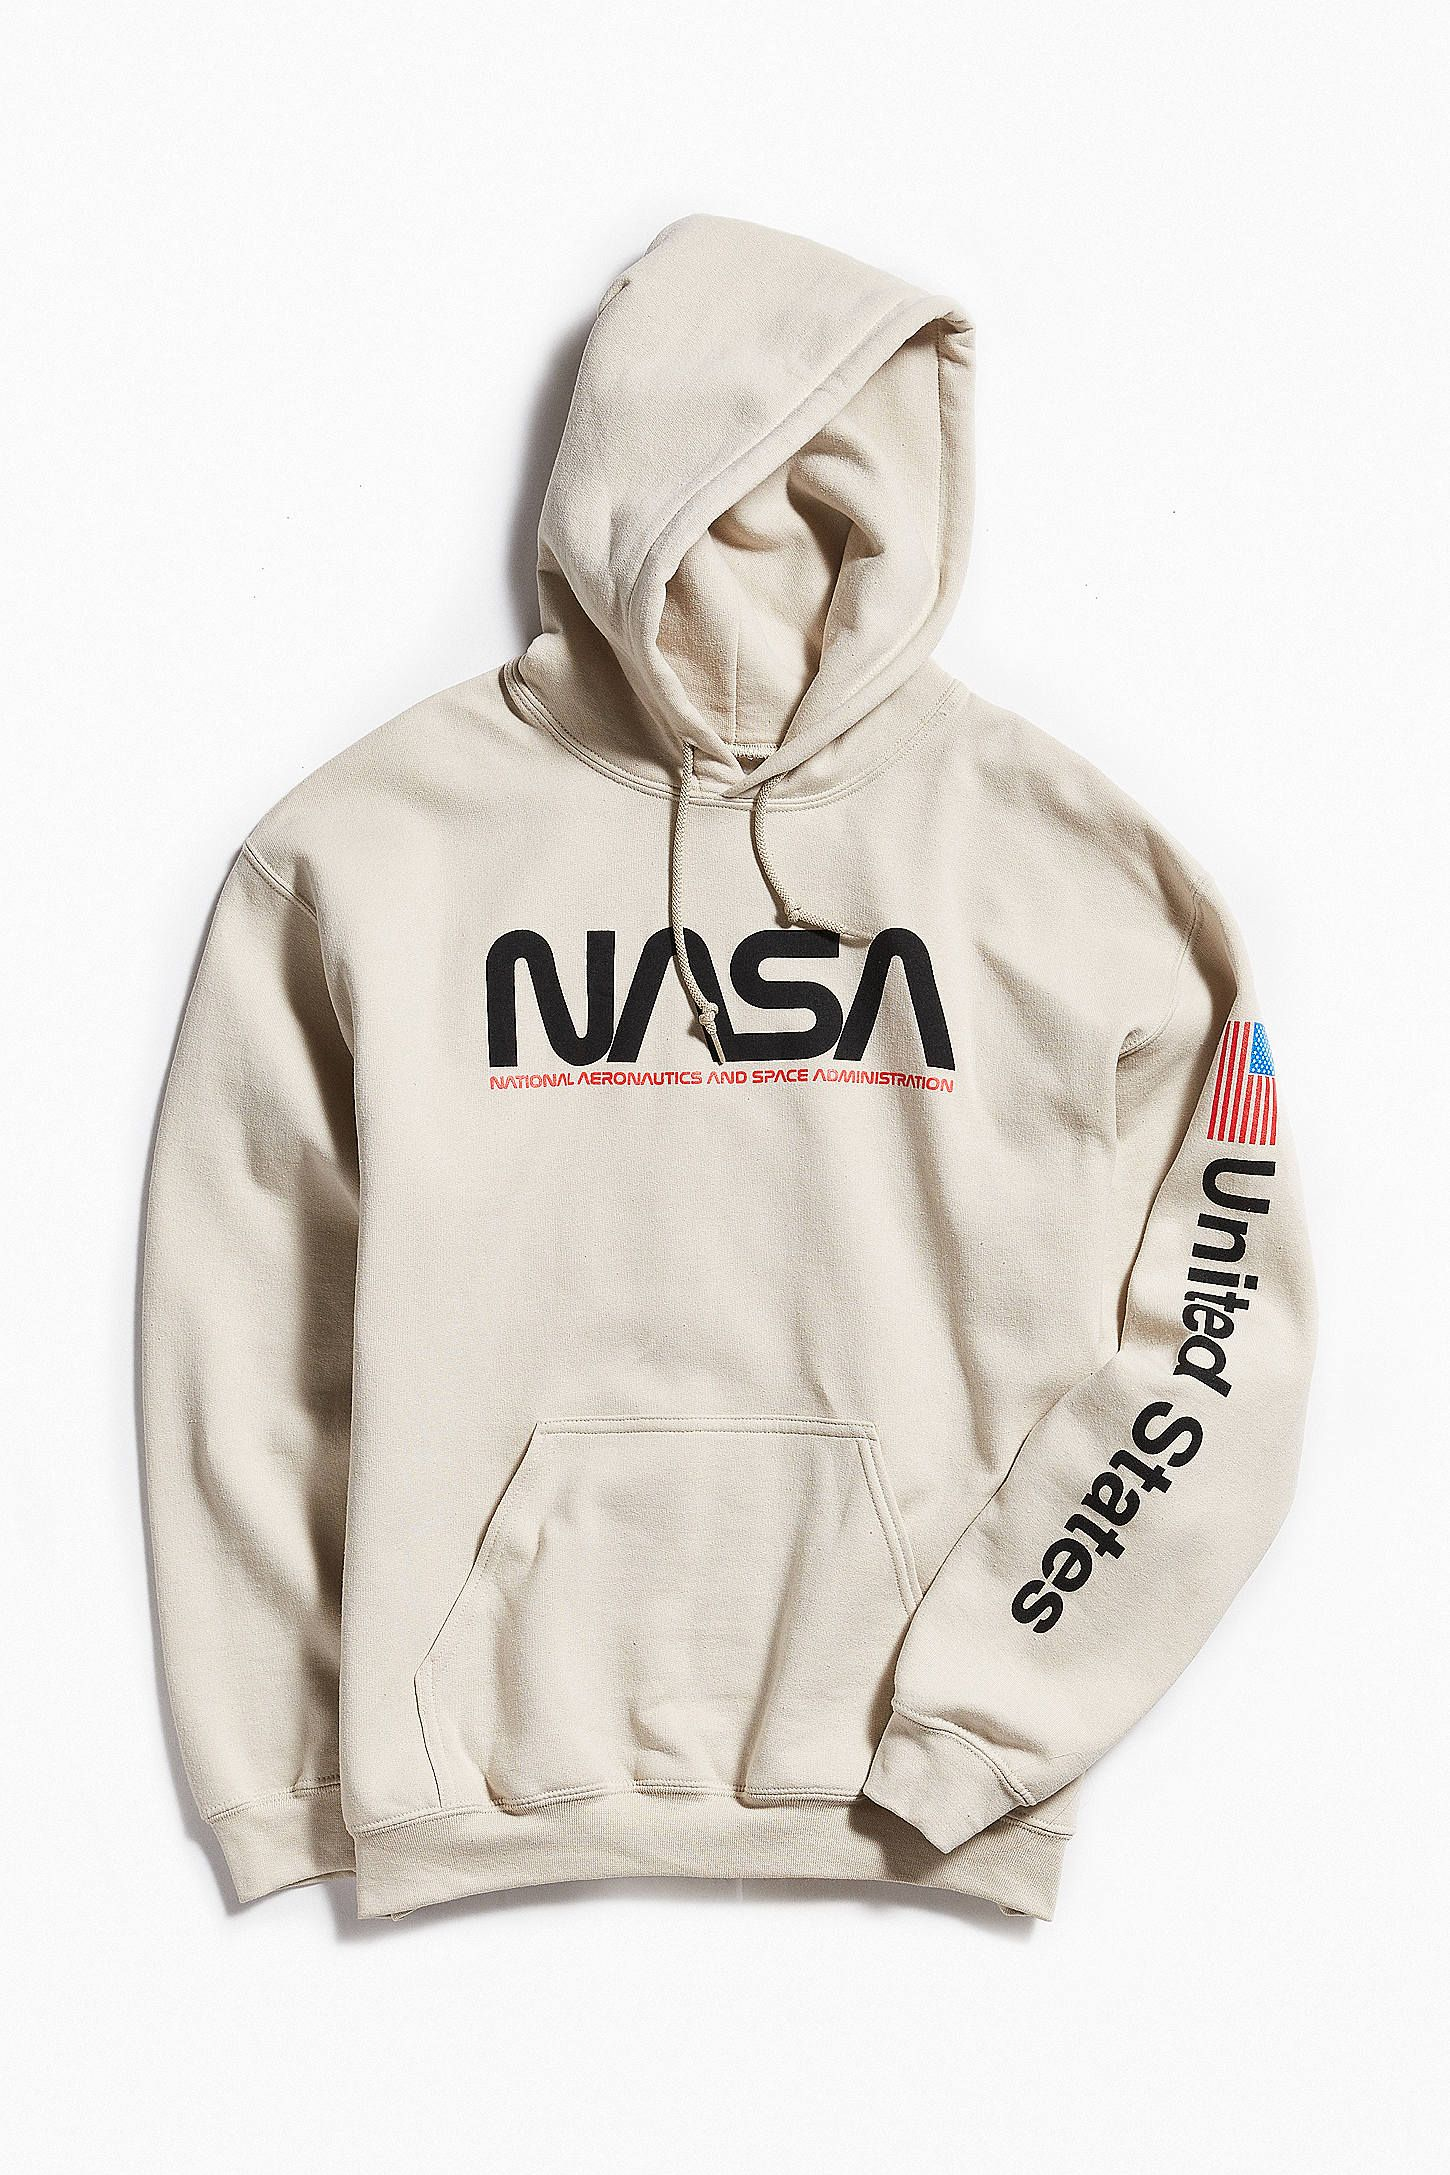 ab5ea533 NASA Hoodie Sweatshirt | Urban Outfitters Hoodies, Sweatshirts, Graphic  Sweatshirt, Sweaters, Fashion